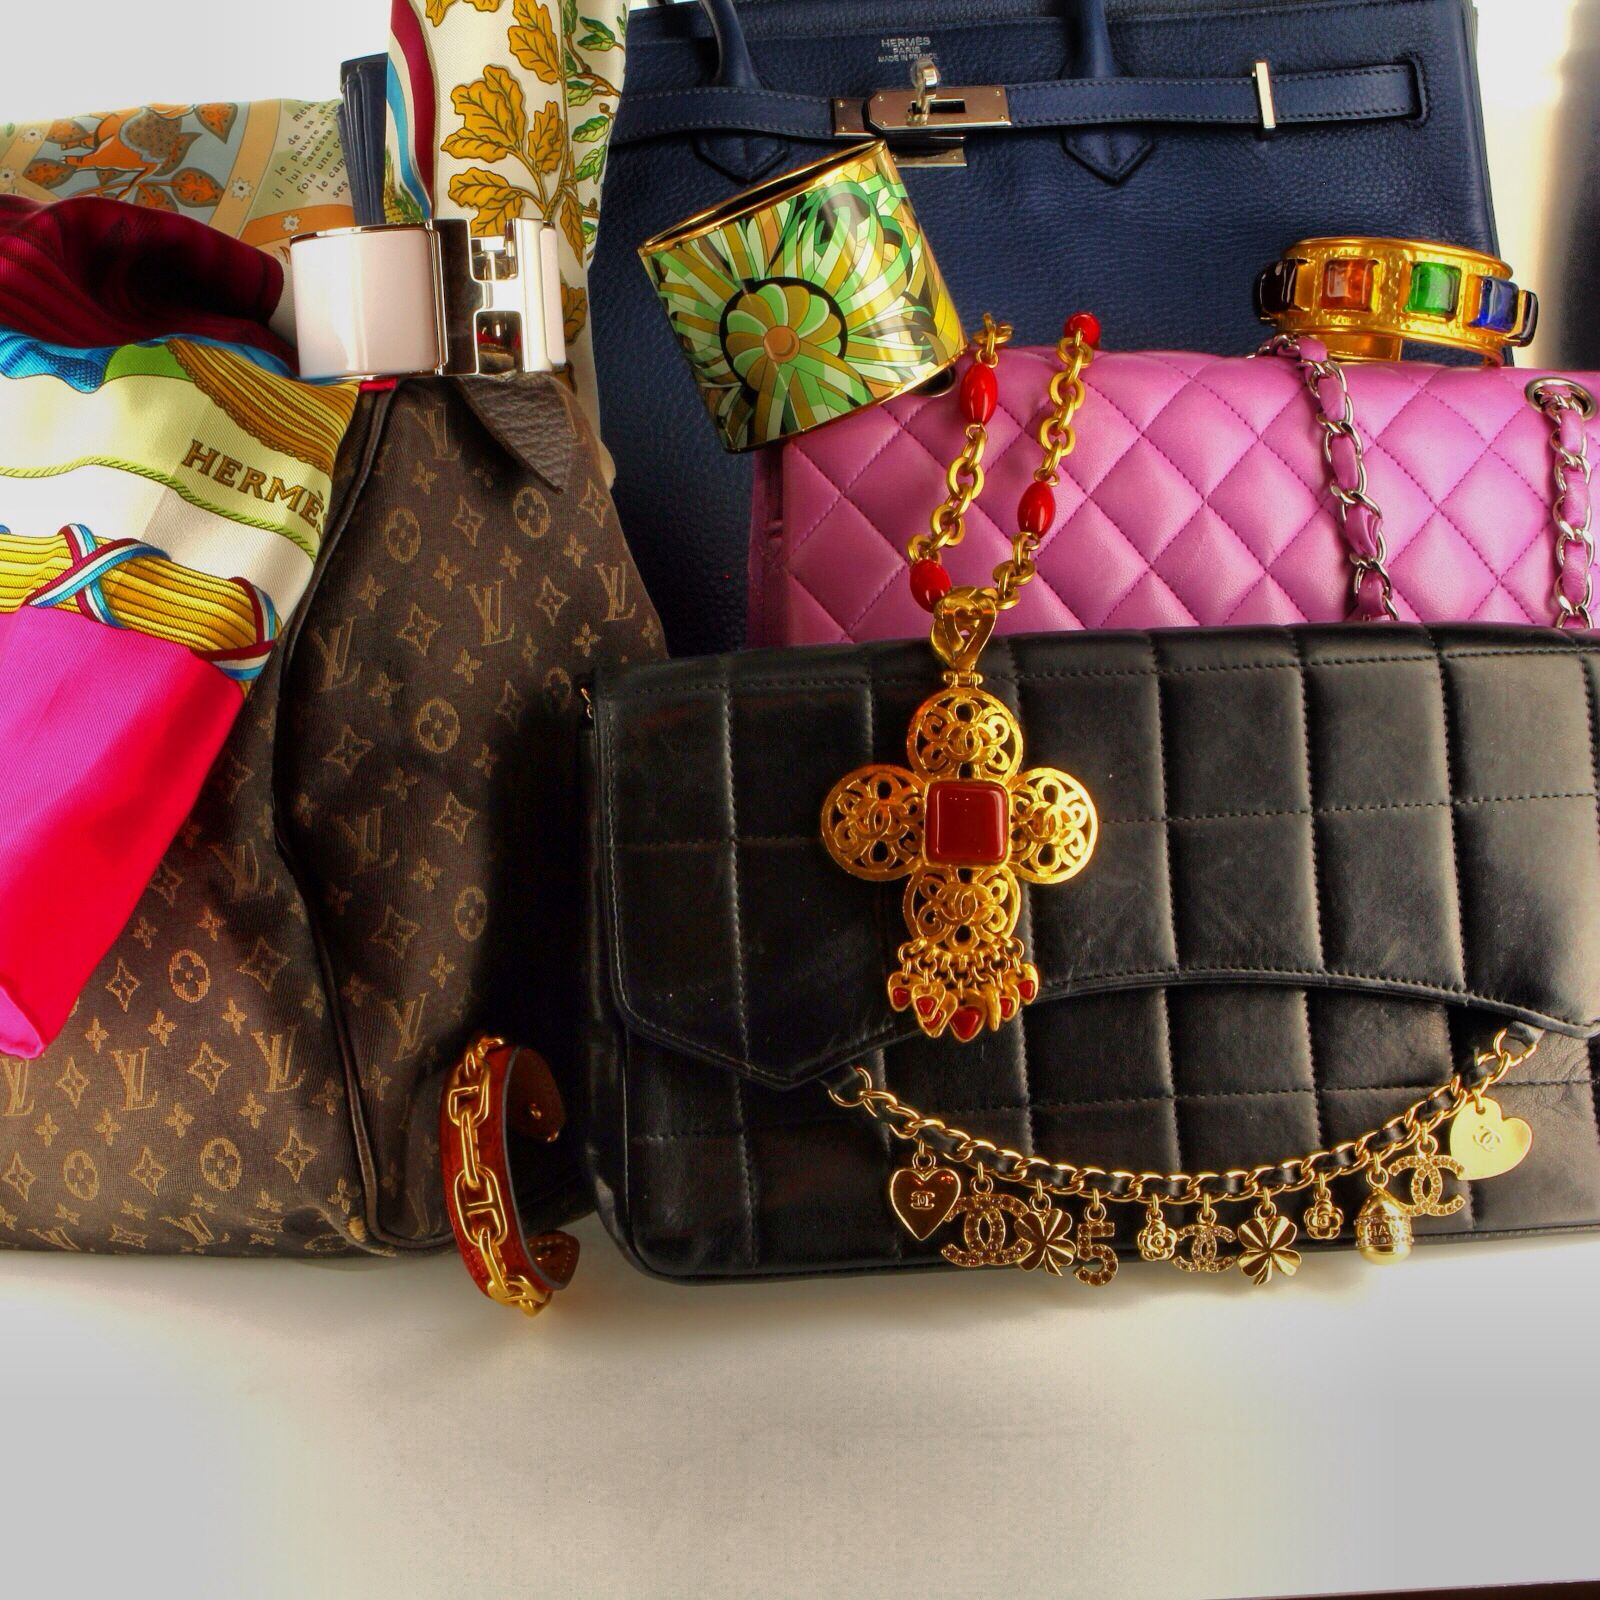 We have a stunning pre-owned luxury collection #hermes #chanel #birkin #louisvuitton #vintage #luxury #handbags #jewelry